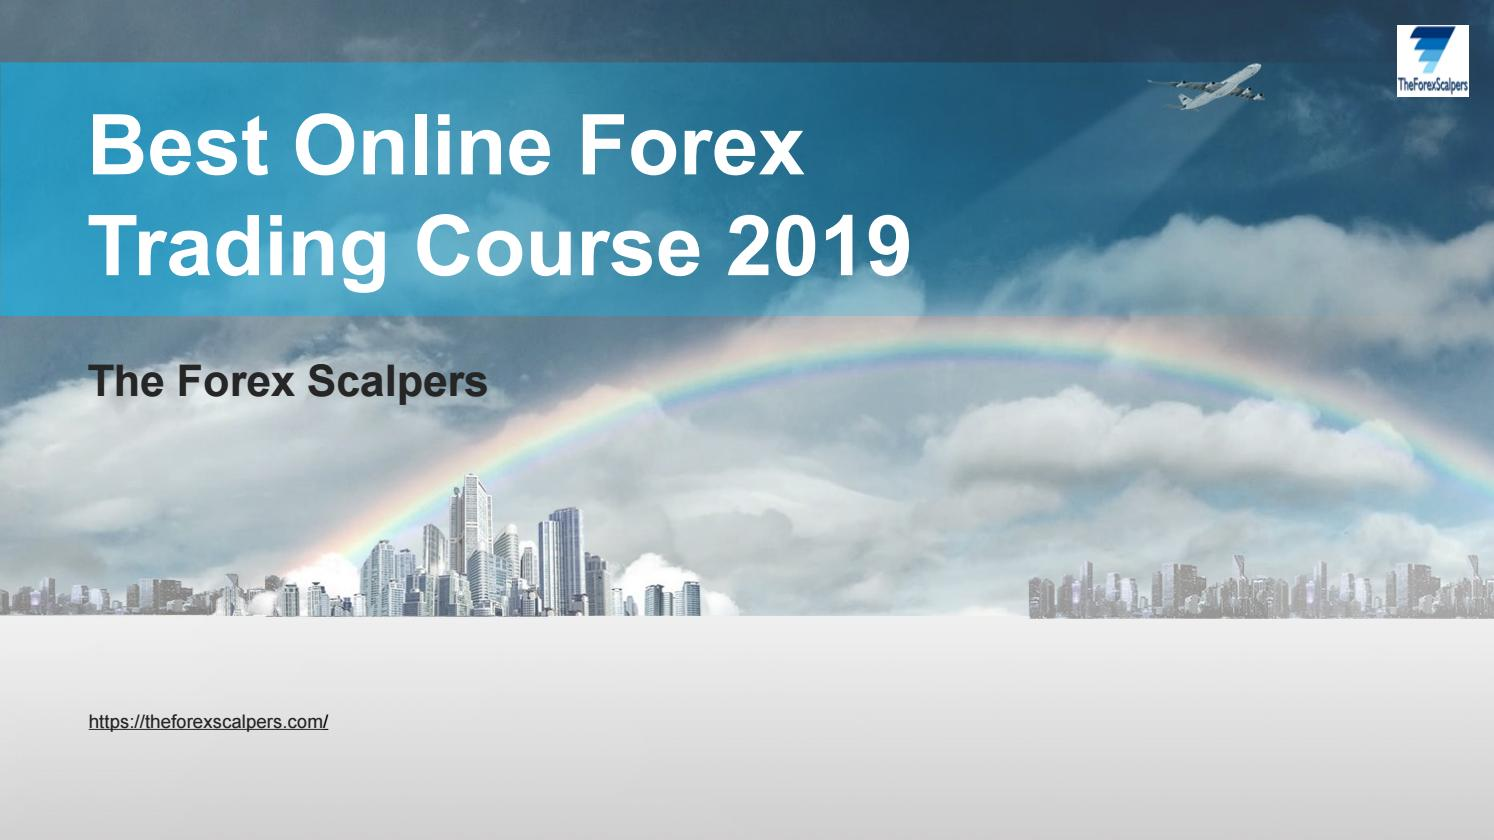 Best Online Forex Trading Course 2019